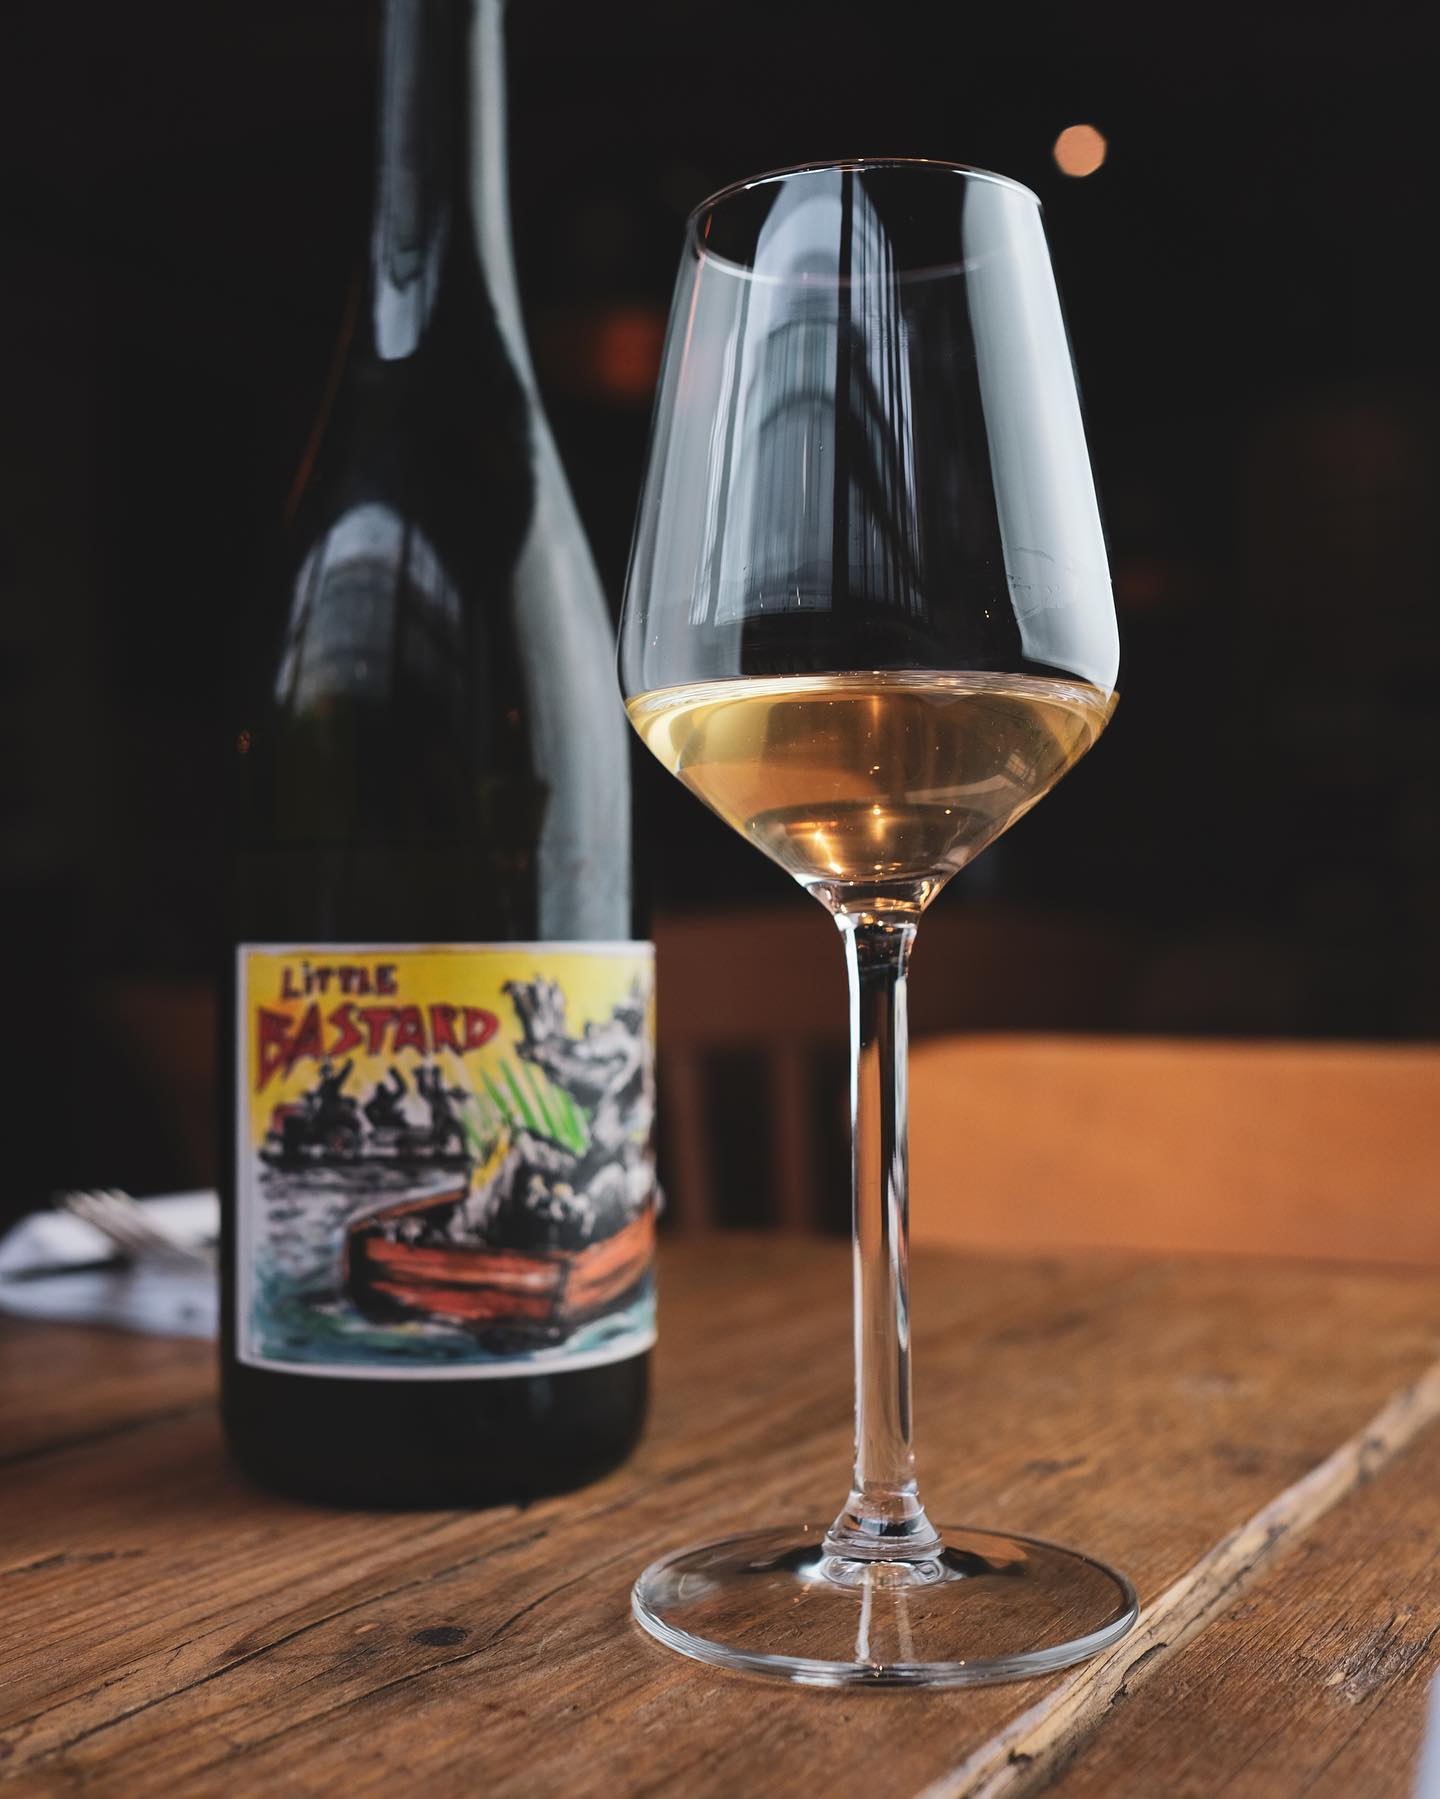 On by the glass for this weekend only.   A wine that deserves to be available to everyone.   @staffelterhof862 Little Bastard is truly a triumphant wine.  Very light skin contact on this (a few hours) but it adds so much depth and complexity.   Notes of peach, perry, wild strawberry and lime with a creamy finish.  Unfiltered, unfined and zero added sulphur.